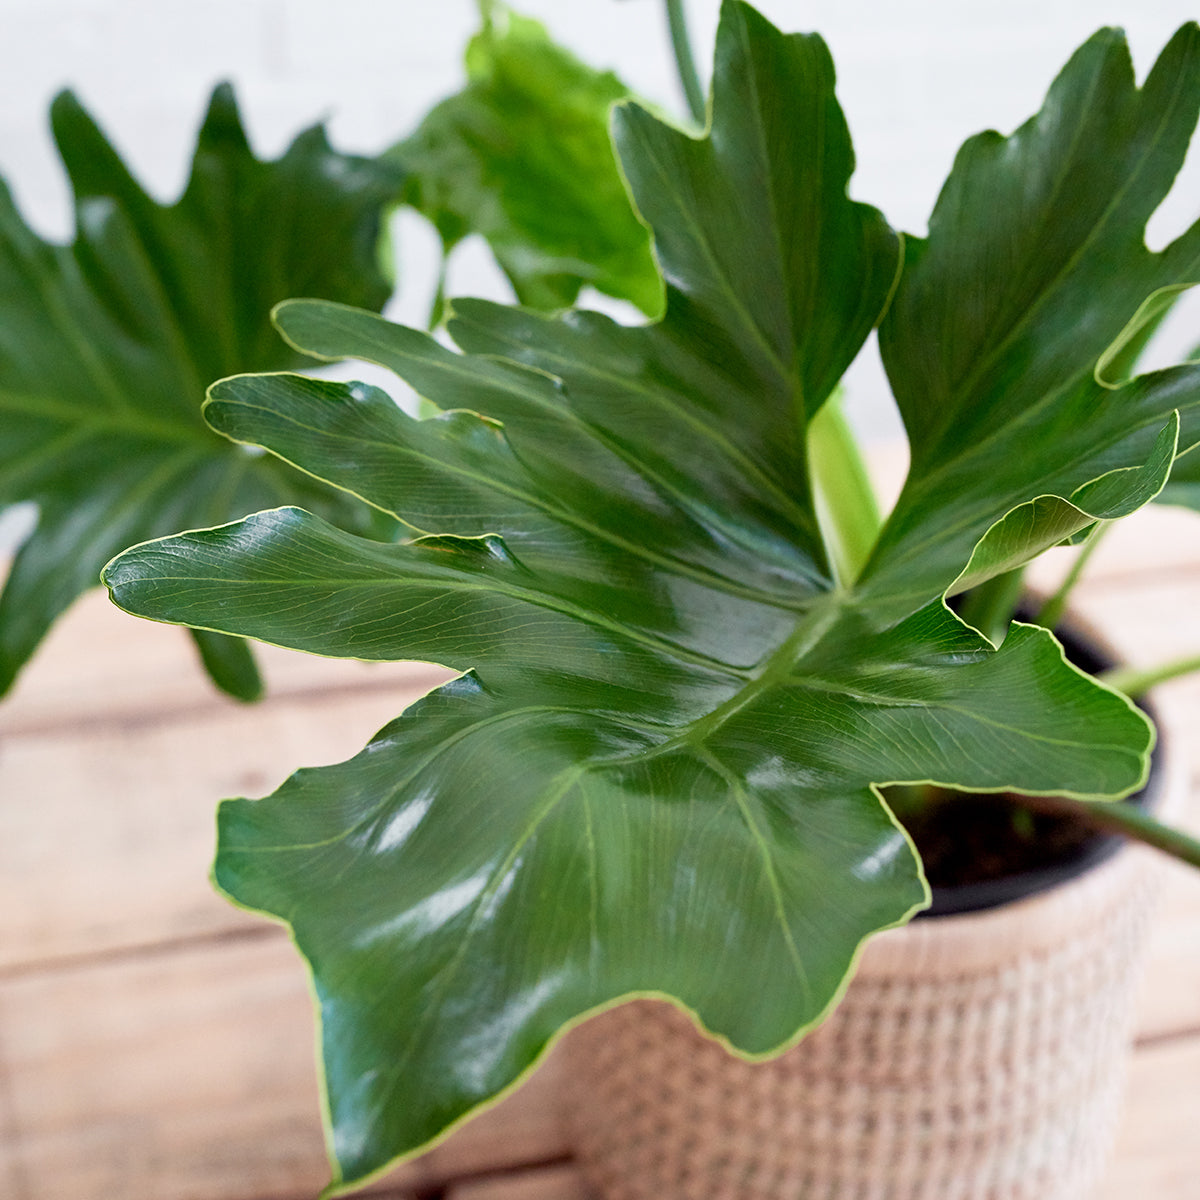 philodendron selloum care instructions